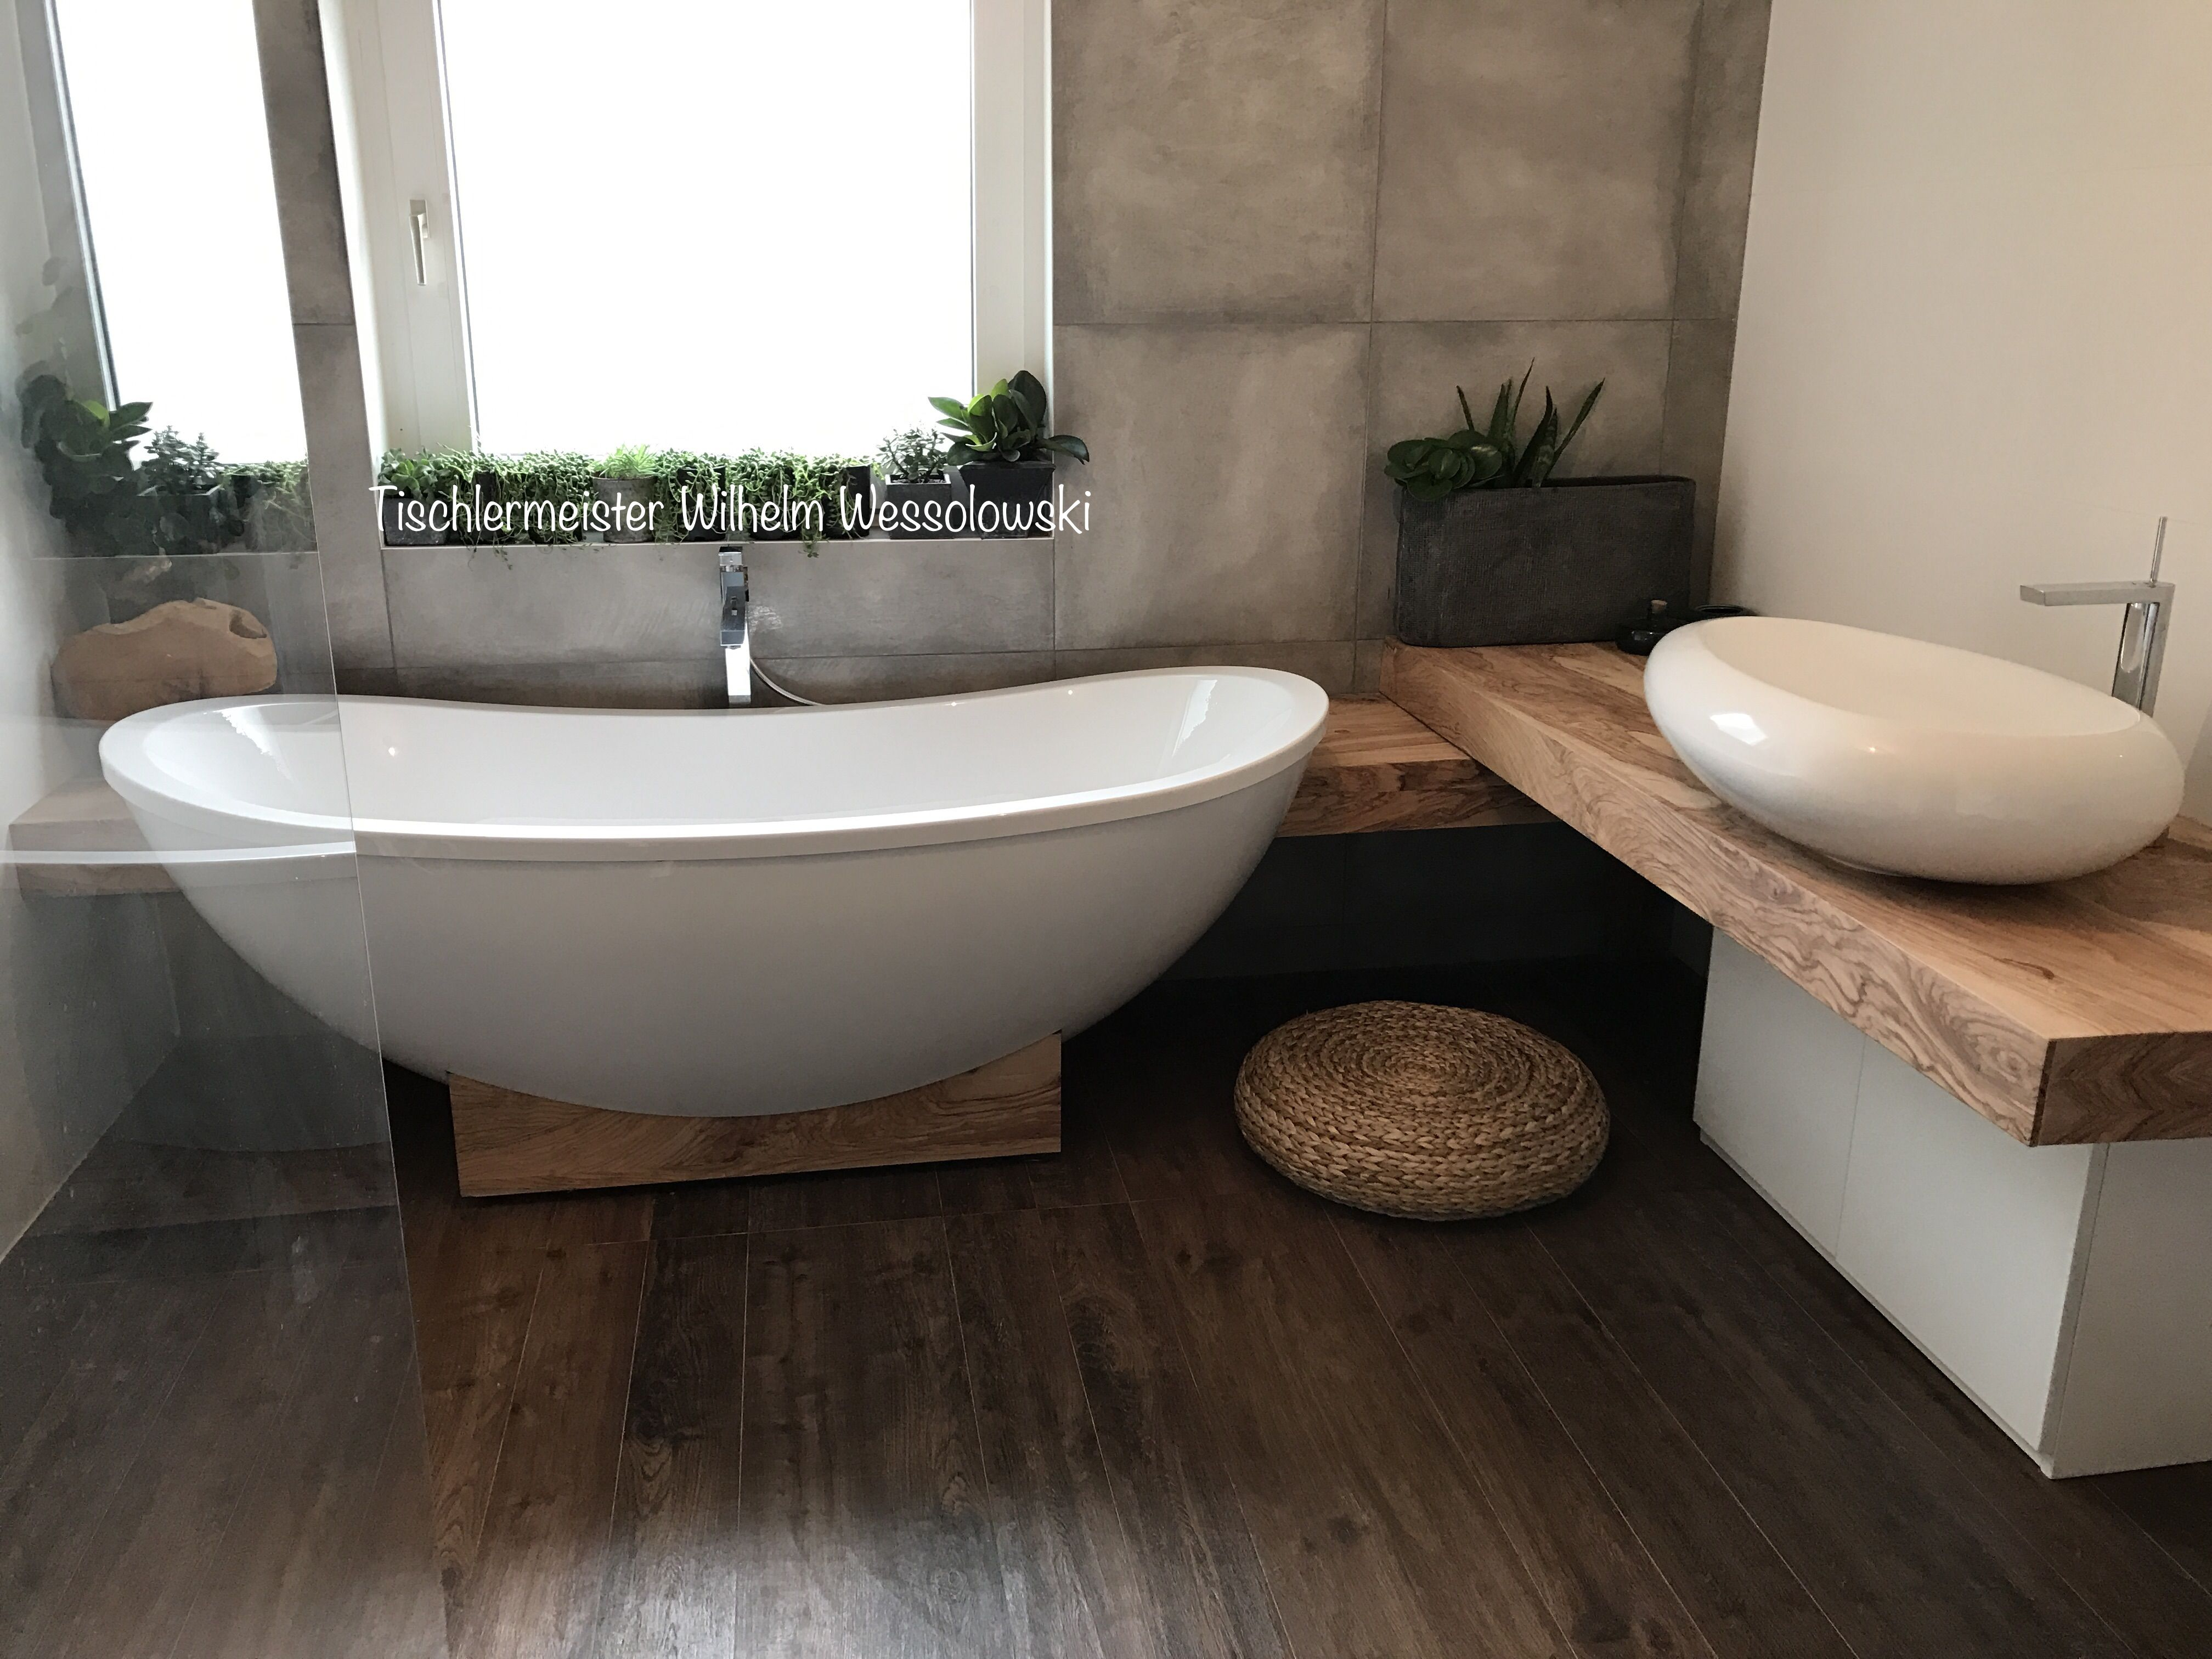 Badezimmer Badewanne ~ Bad badezimmer badewanne holz olivenholz individuell liebe